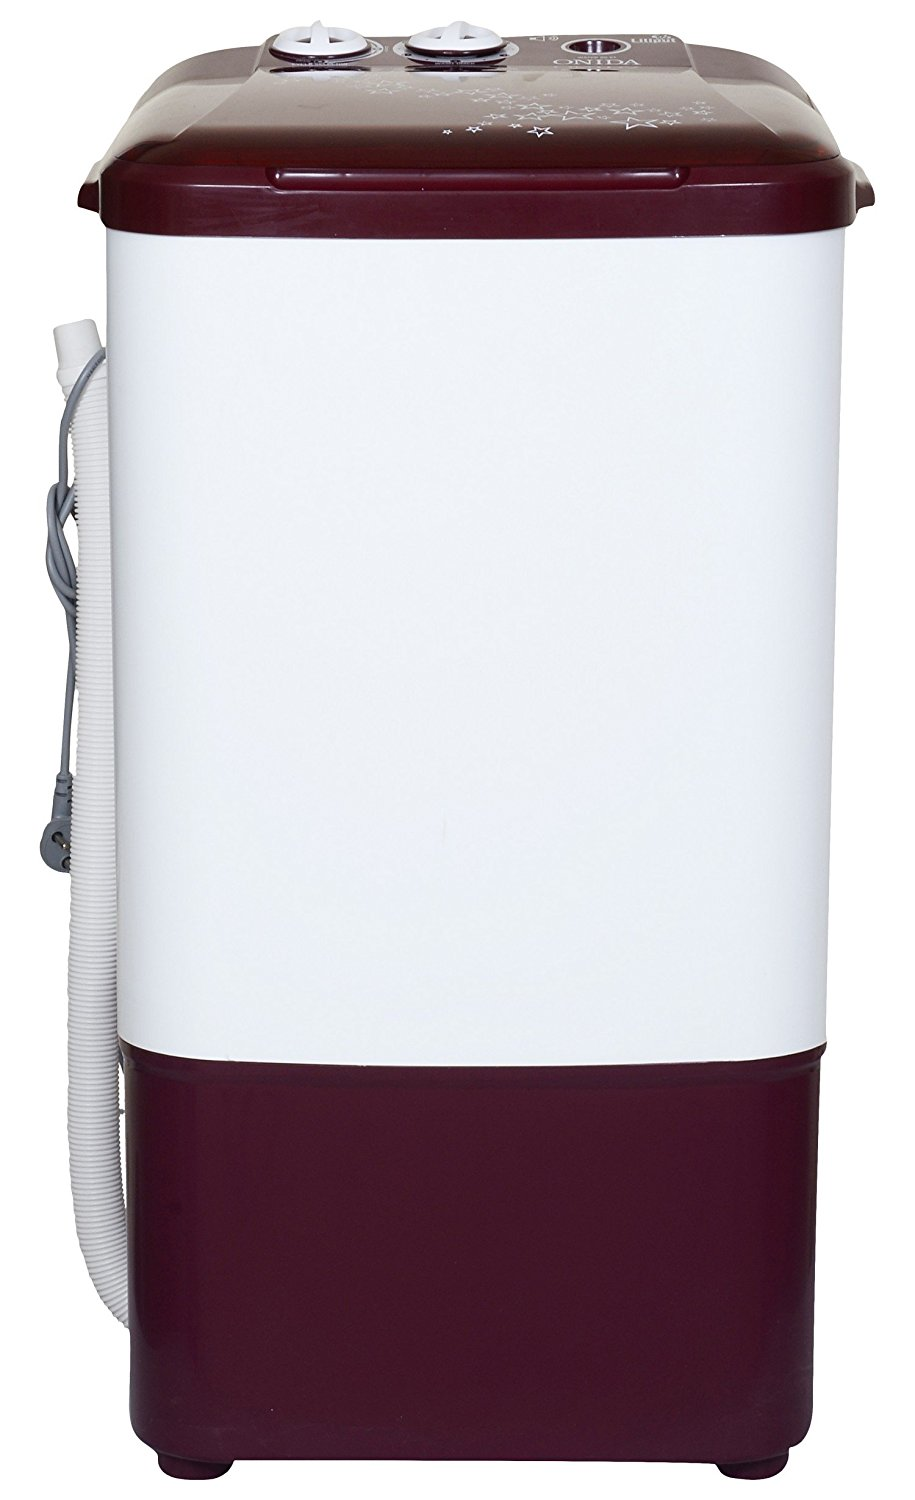 Which Is The Best Top Loading Washing Machine Onida Ws65wlpt1lr Liliput Semi Automatic Top Loading Washing